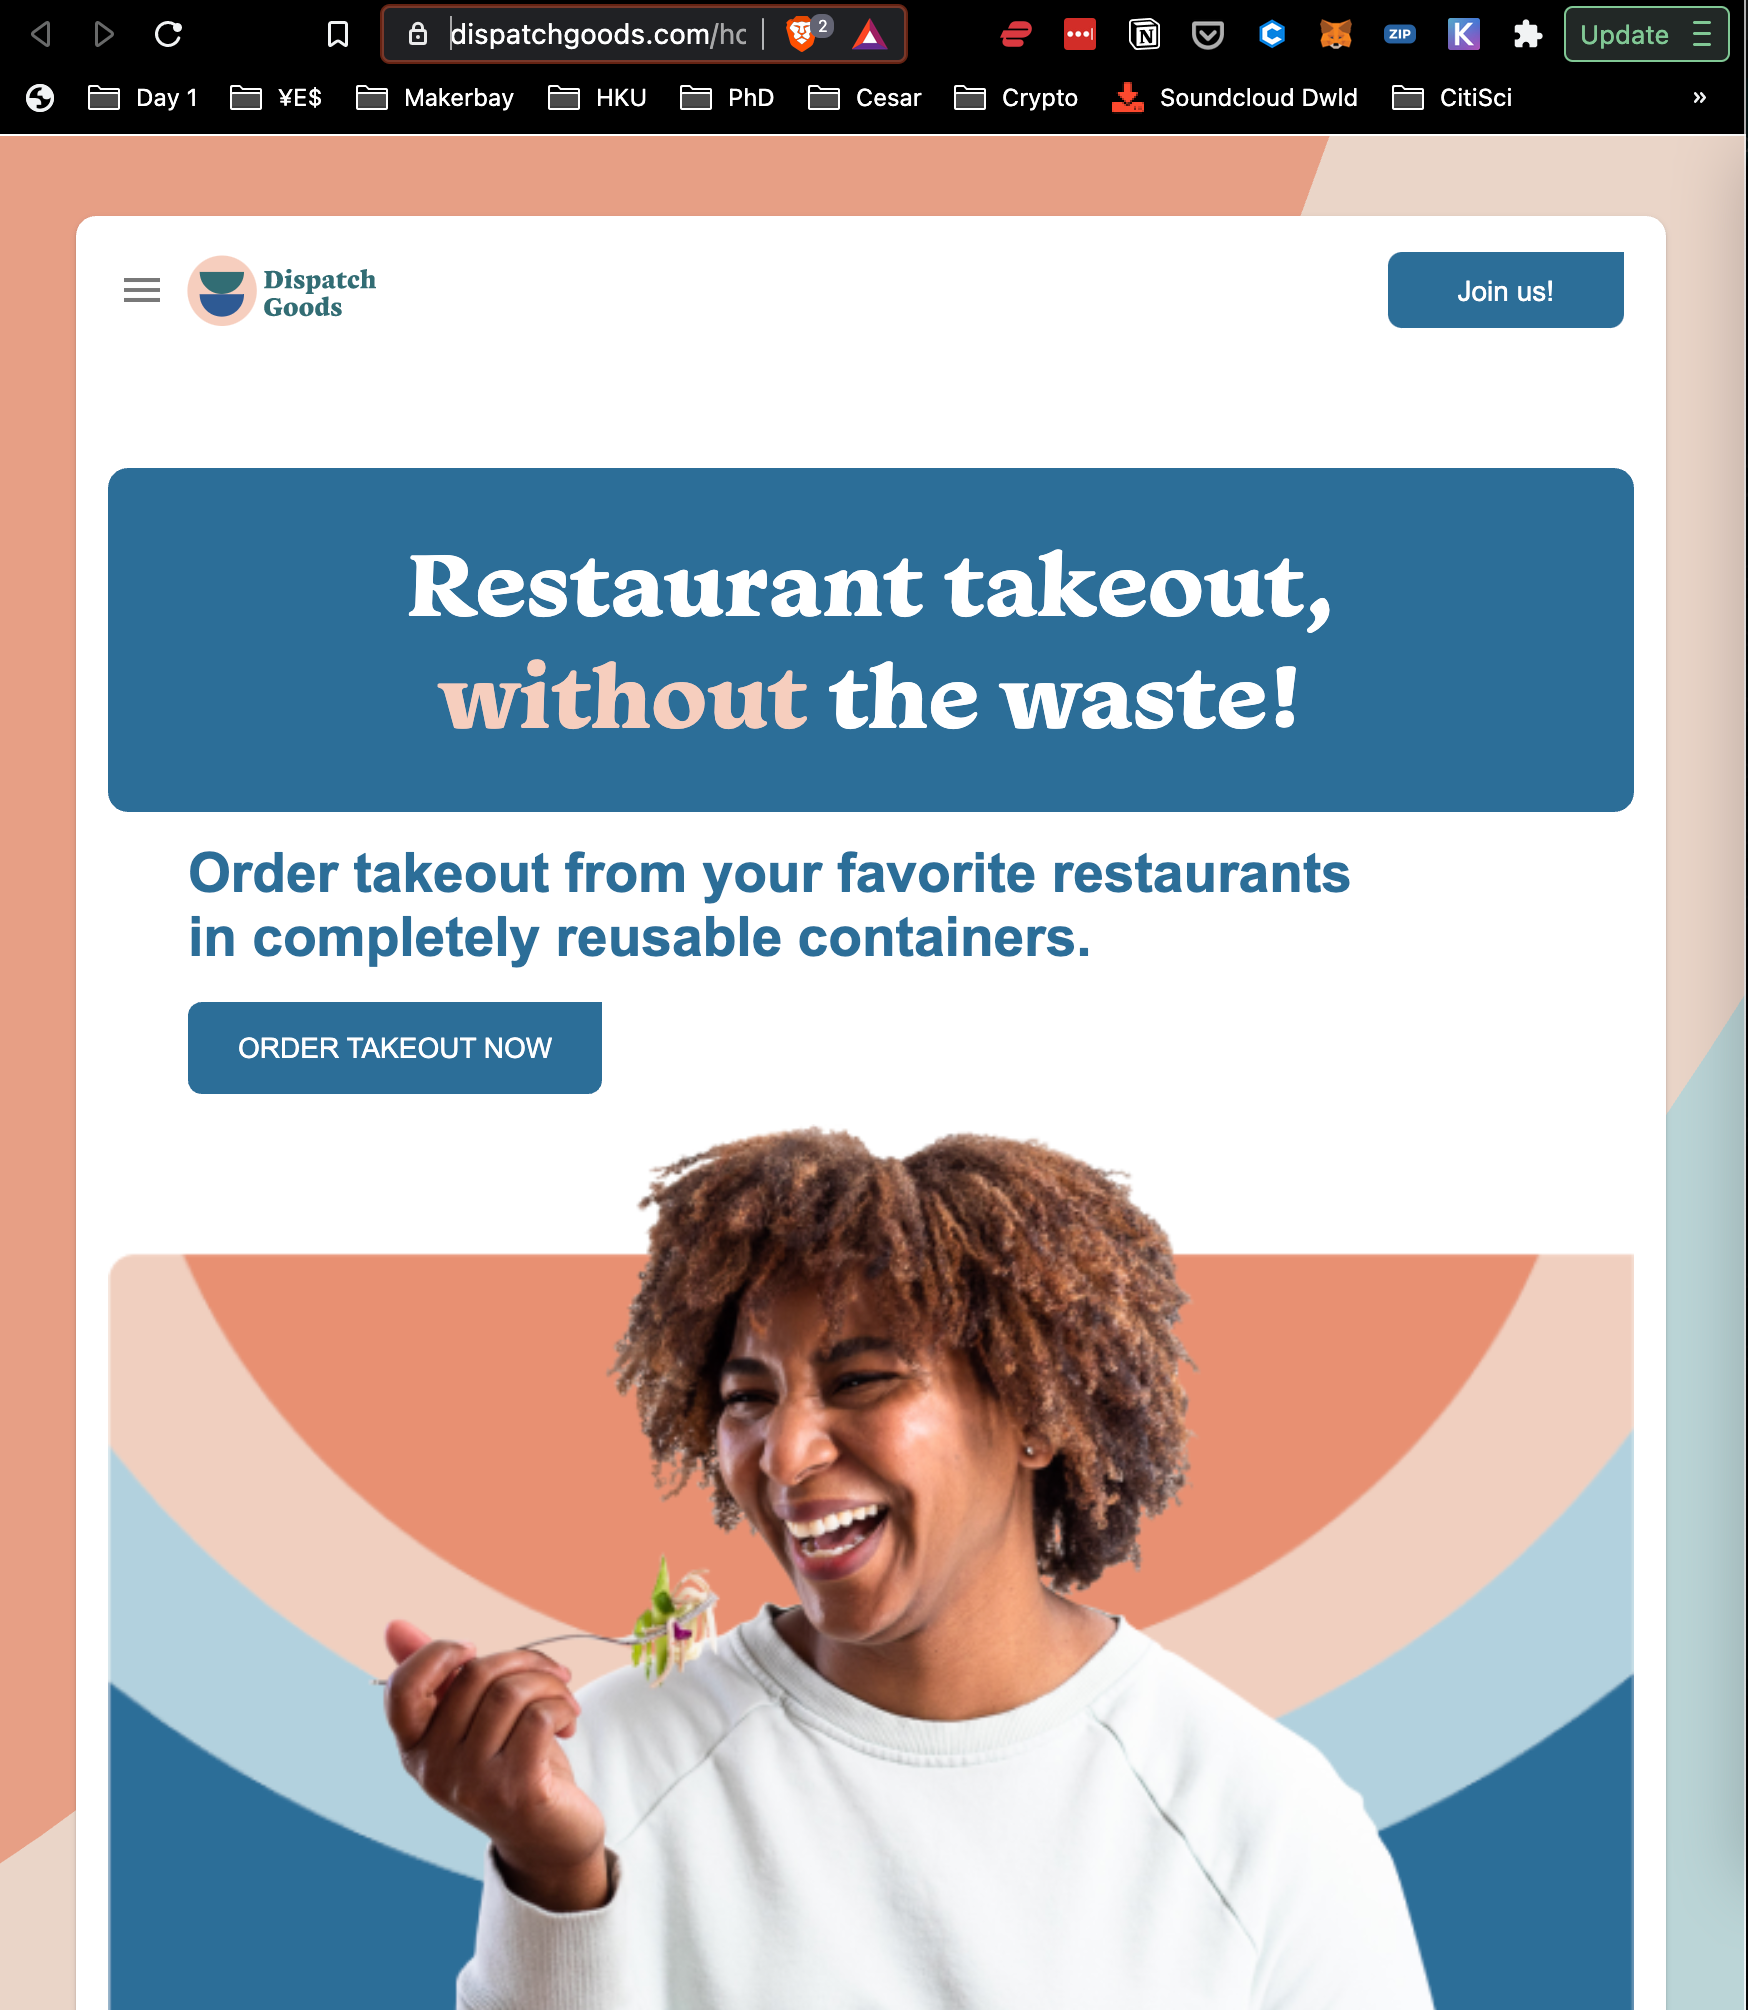 Dispatch Goods, Restaurant Takeout without waste